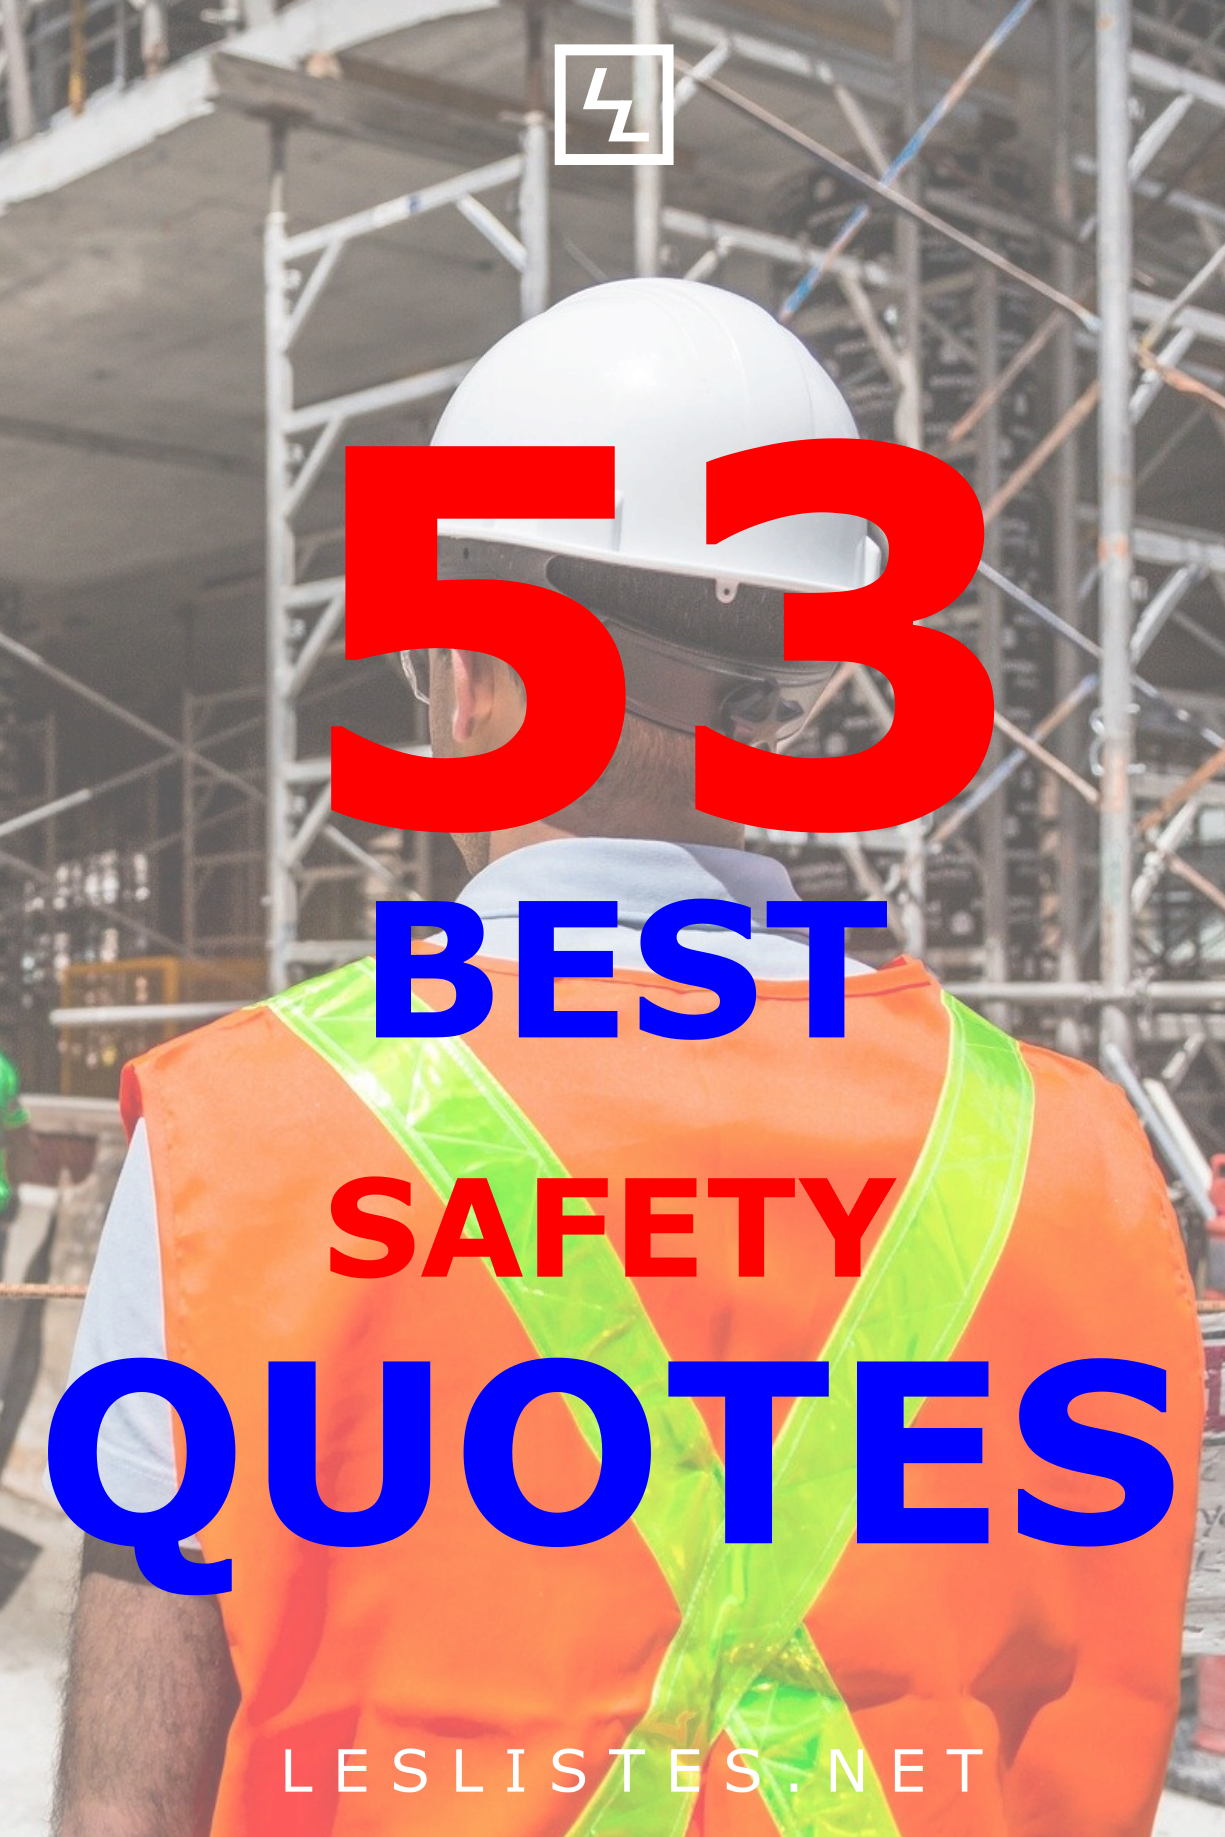 The Top 53 Safety Quotes You Should Know